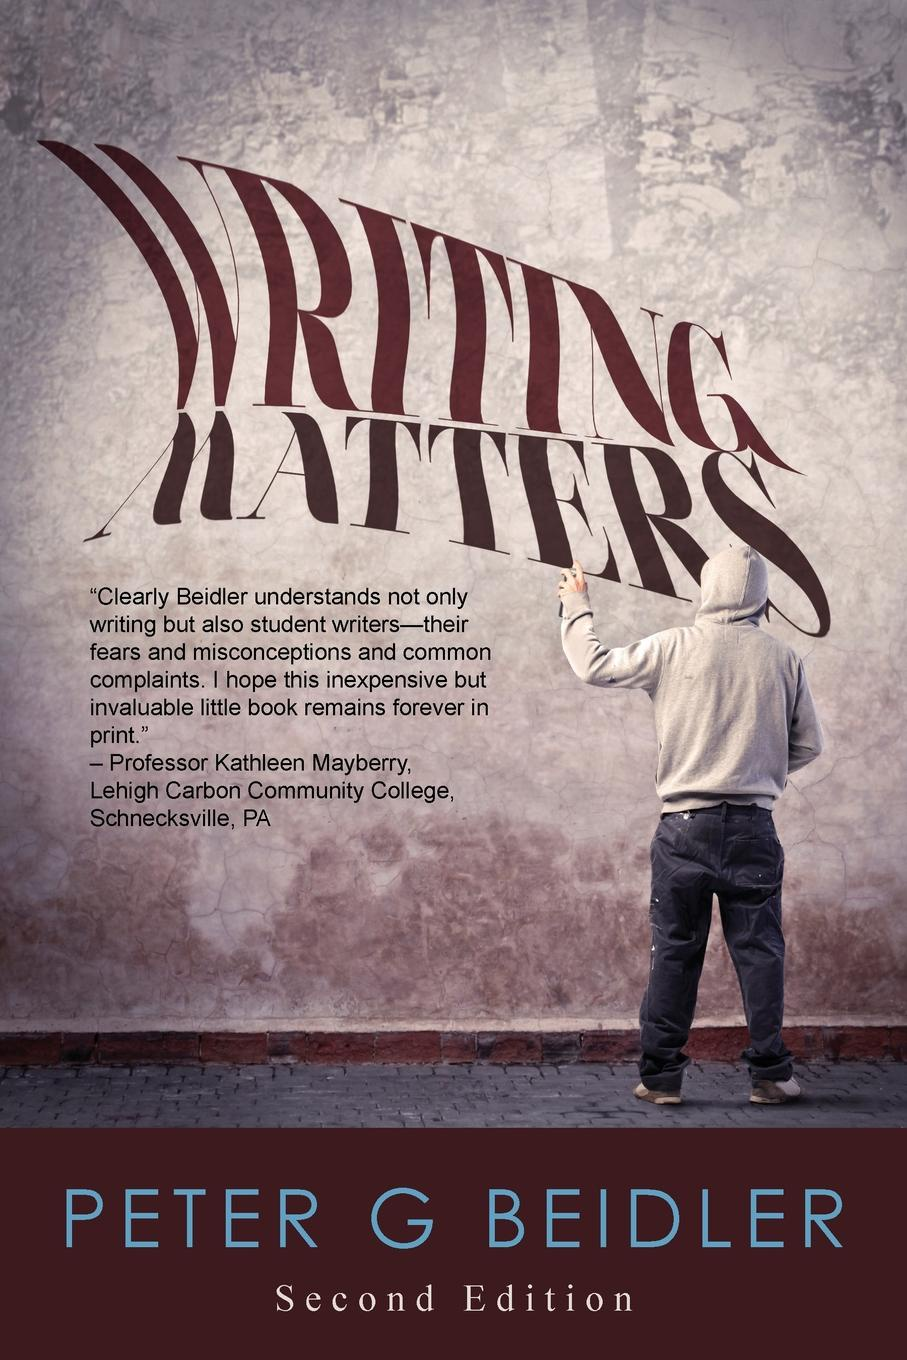 Peter G. Beidler Writing Matters peter felten the undergraduate experience focusing institutions on what matters most